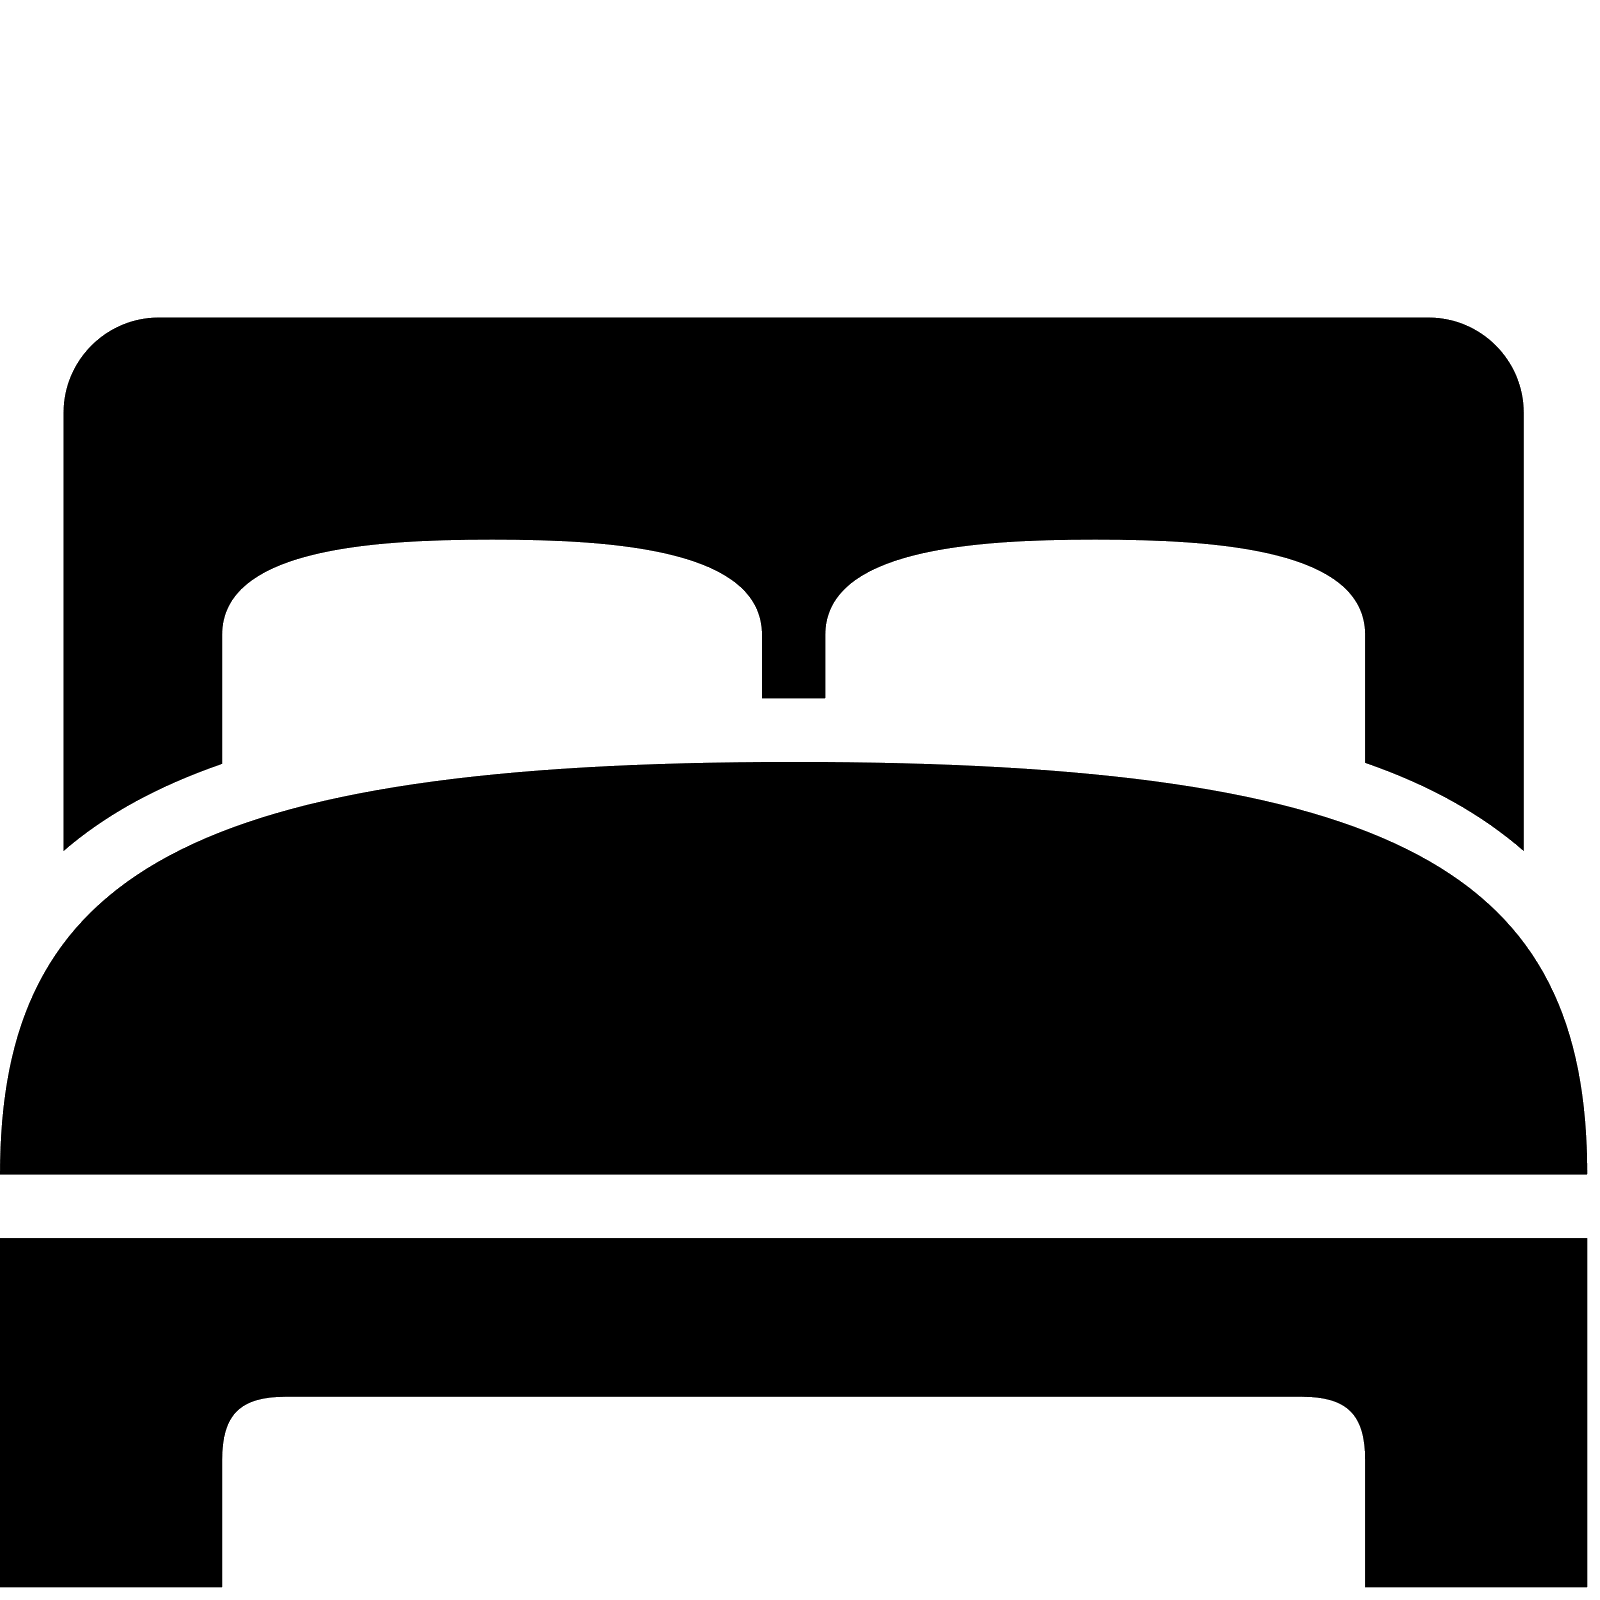 bed-icon-png-29